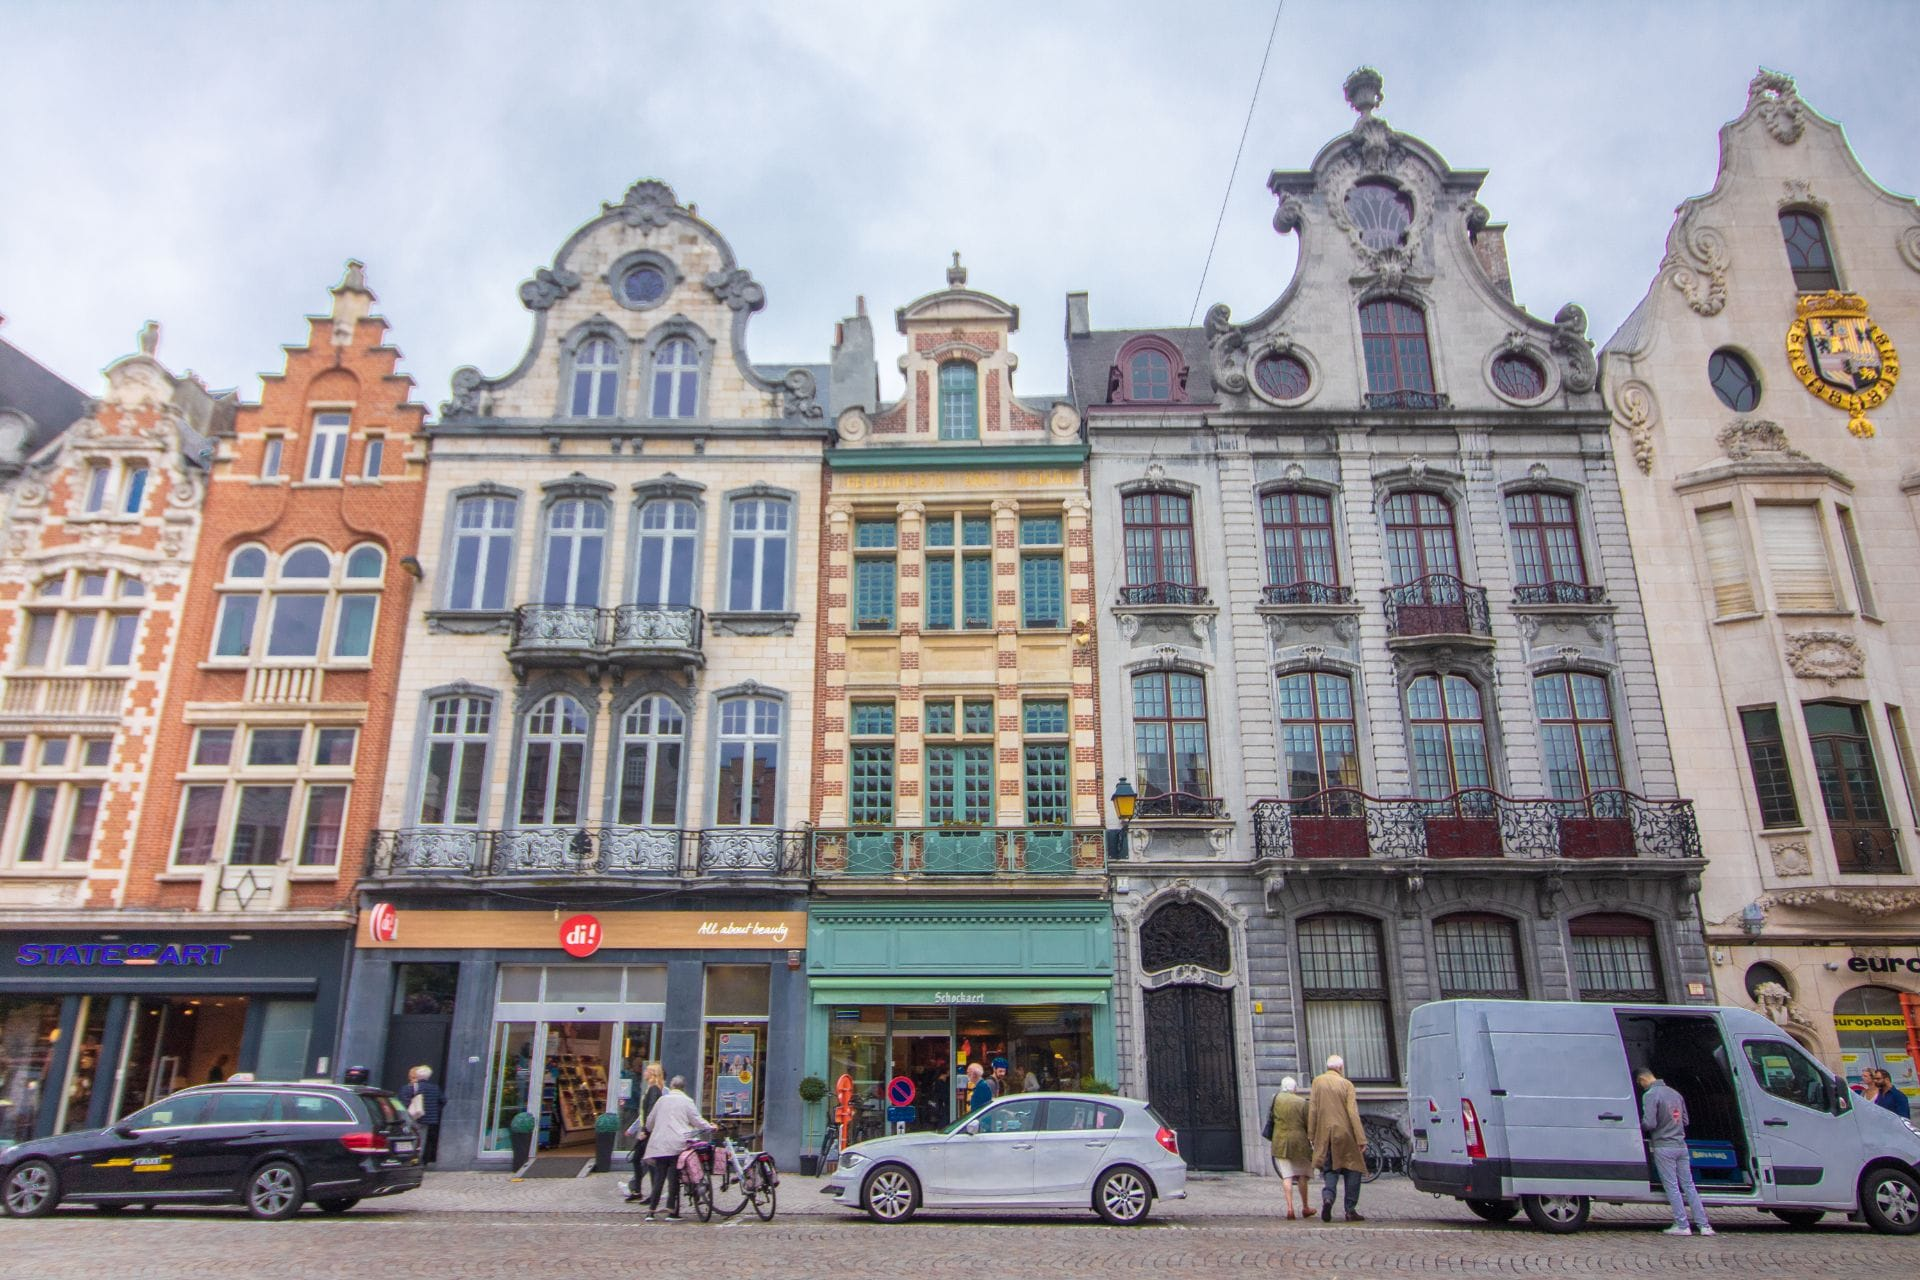 colourful-buildings-lining-a-european-street-ijzerenleen-mechelen-belgium